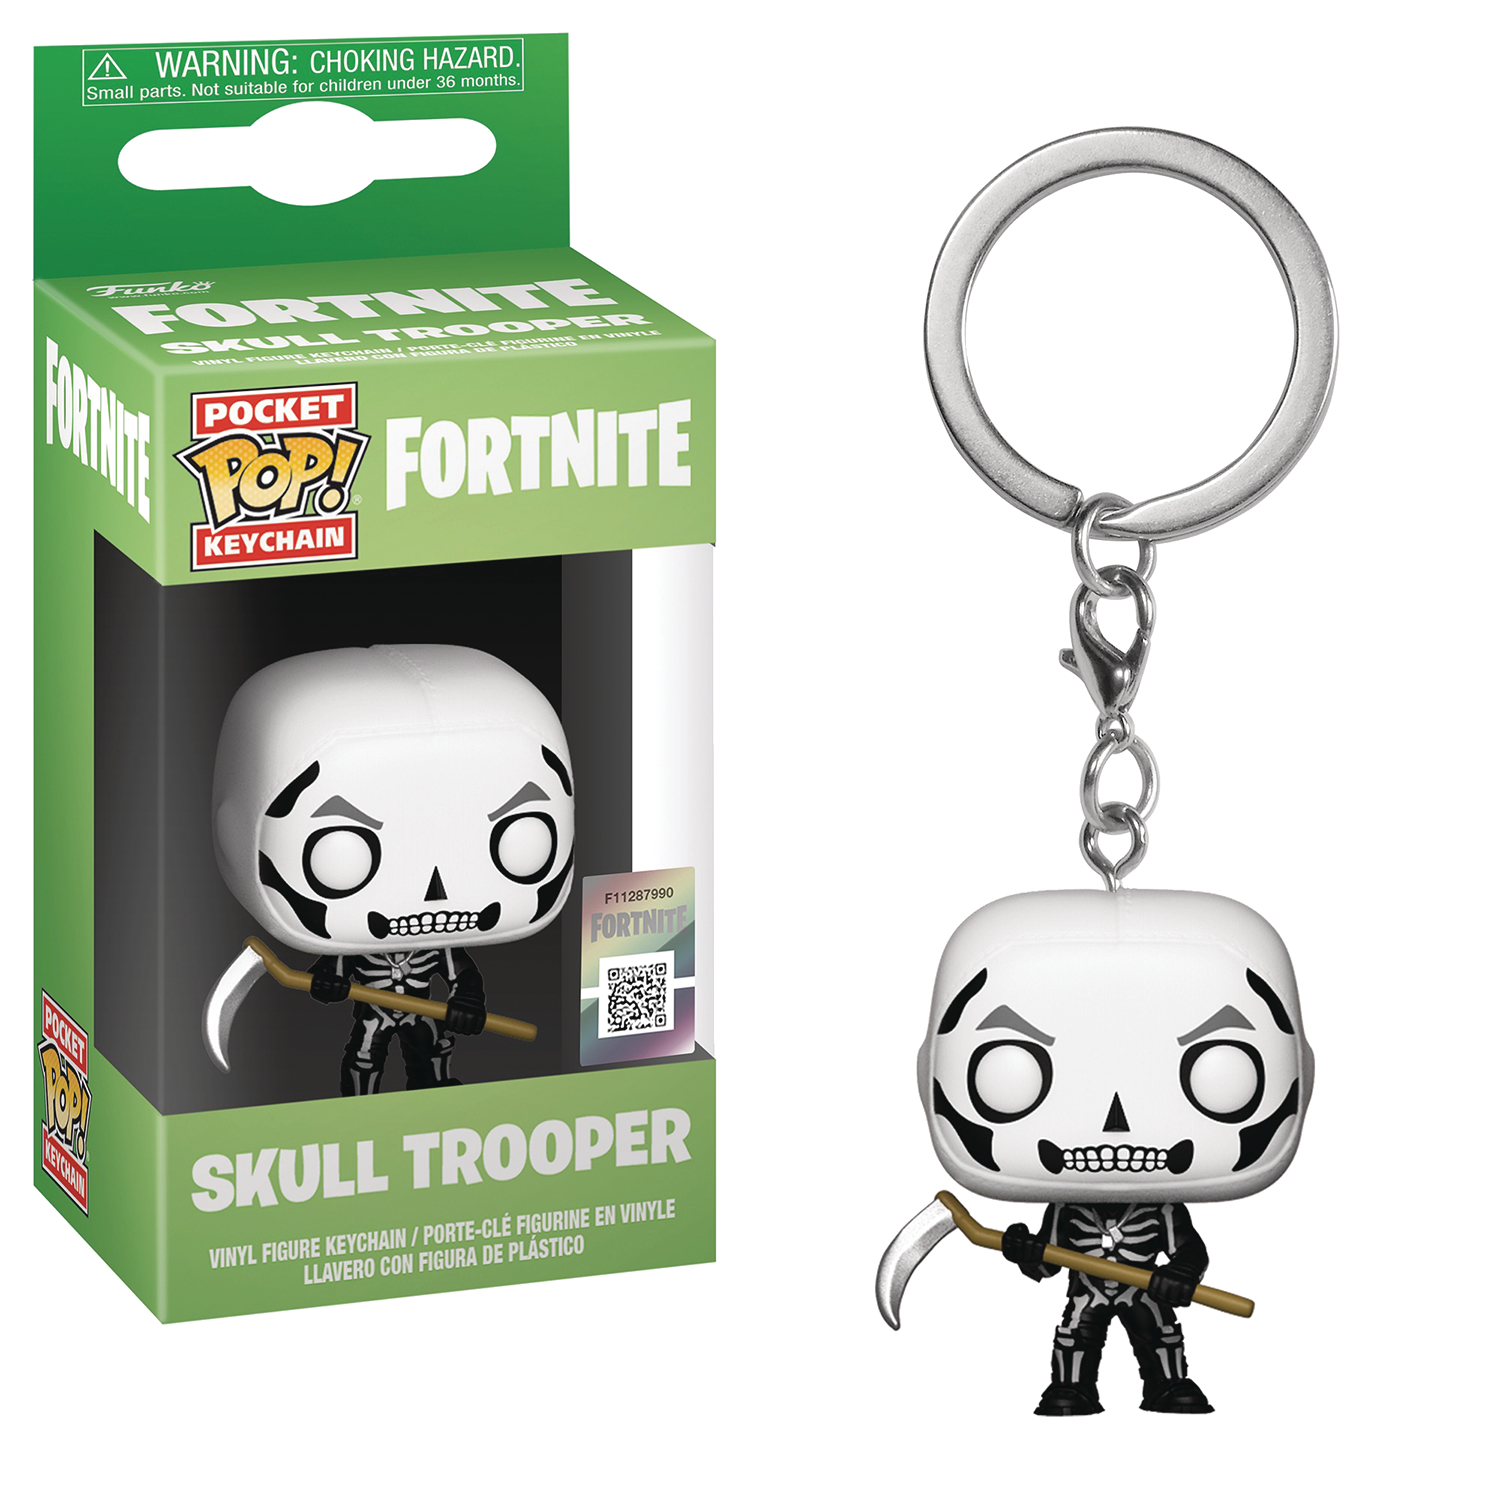 POCKET POP FORTNITE S1A SKULL TROOPER FIG KEYCHAIN